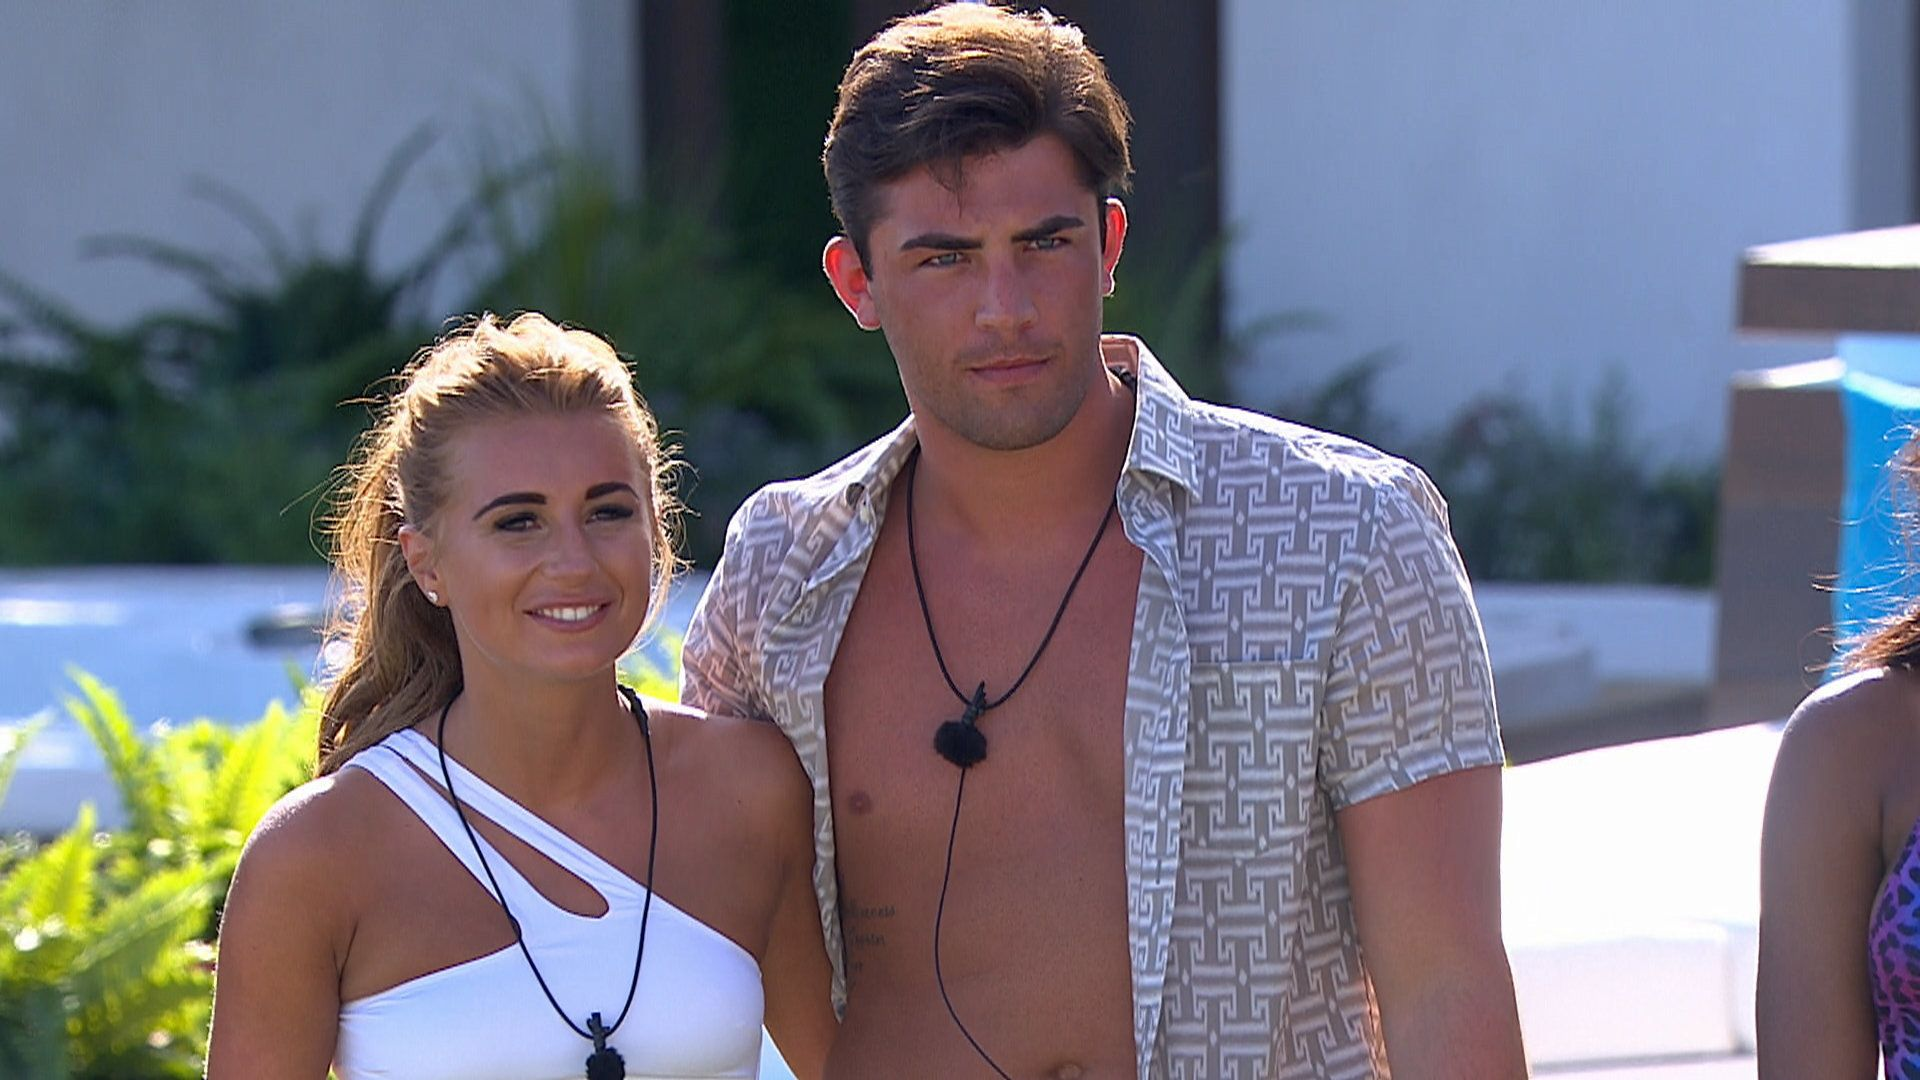 'Love Island' Fans Beg Bosses Not To Turn Show Into 'Ex On The Beach' With Arrival Of Jack's Ex